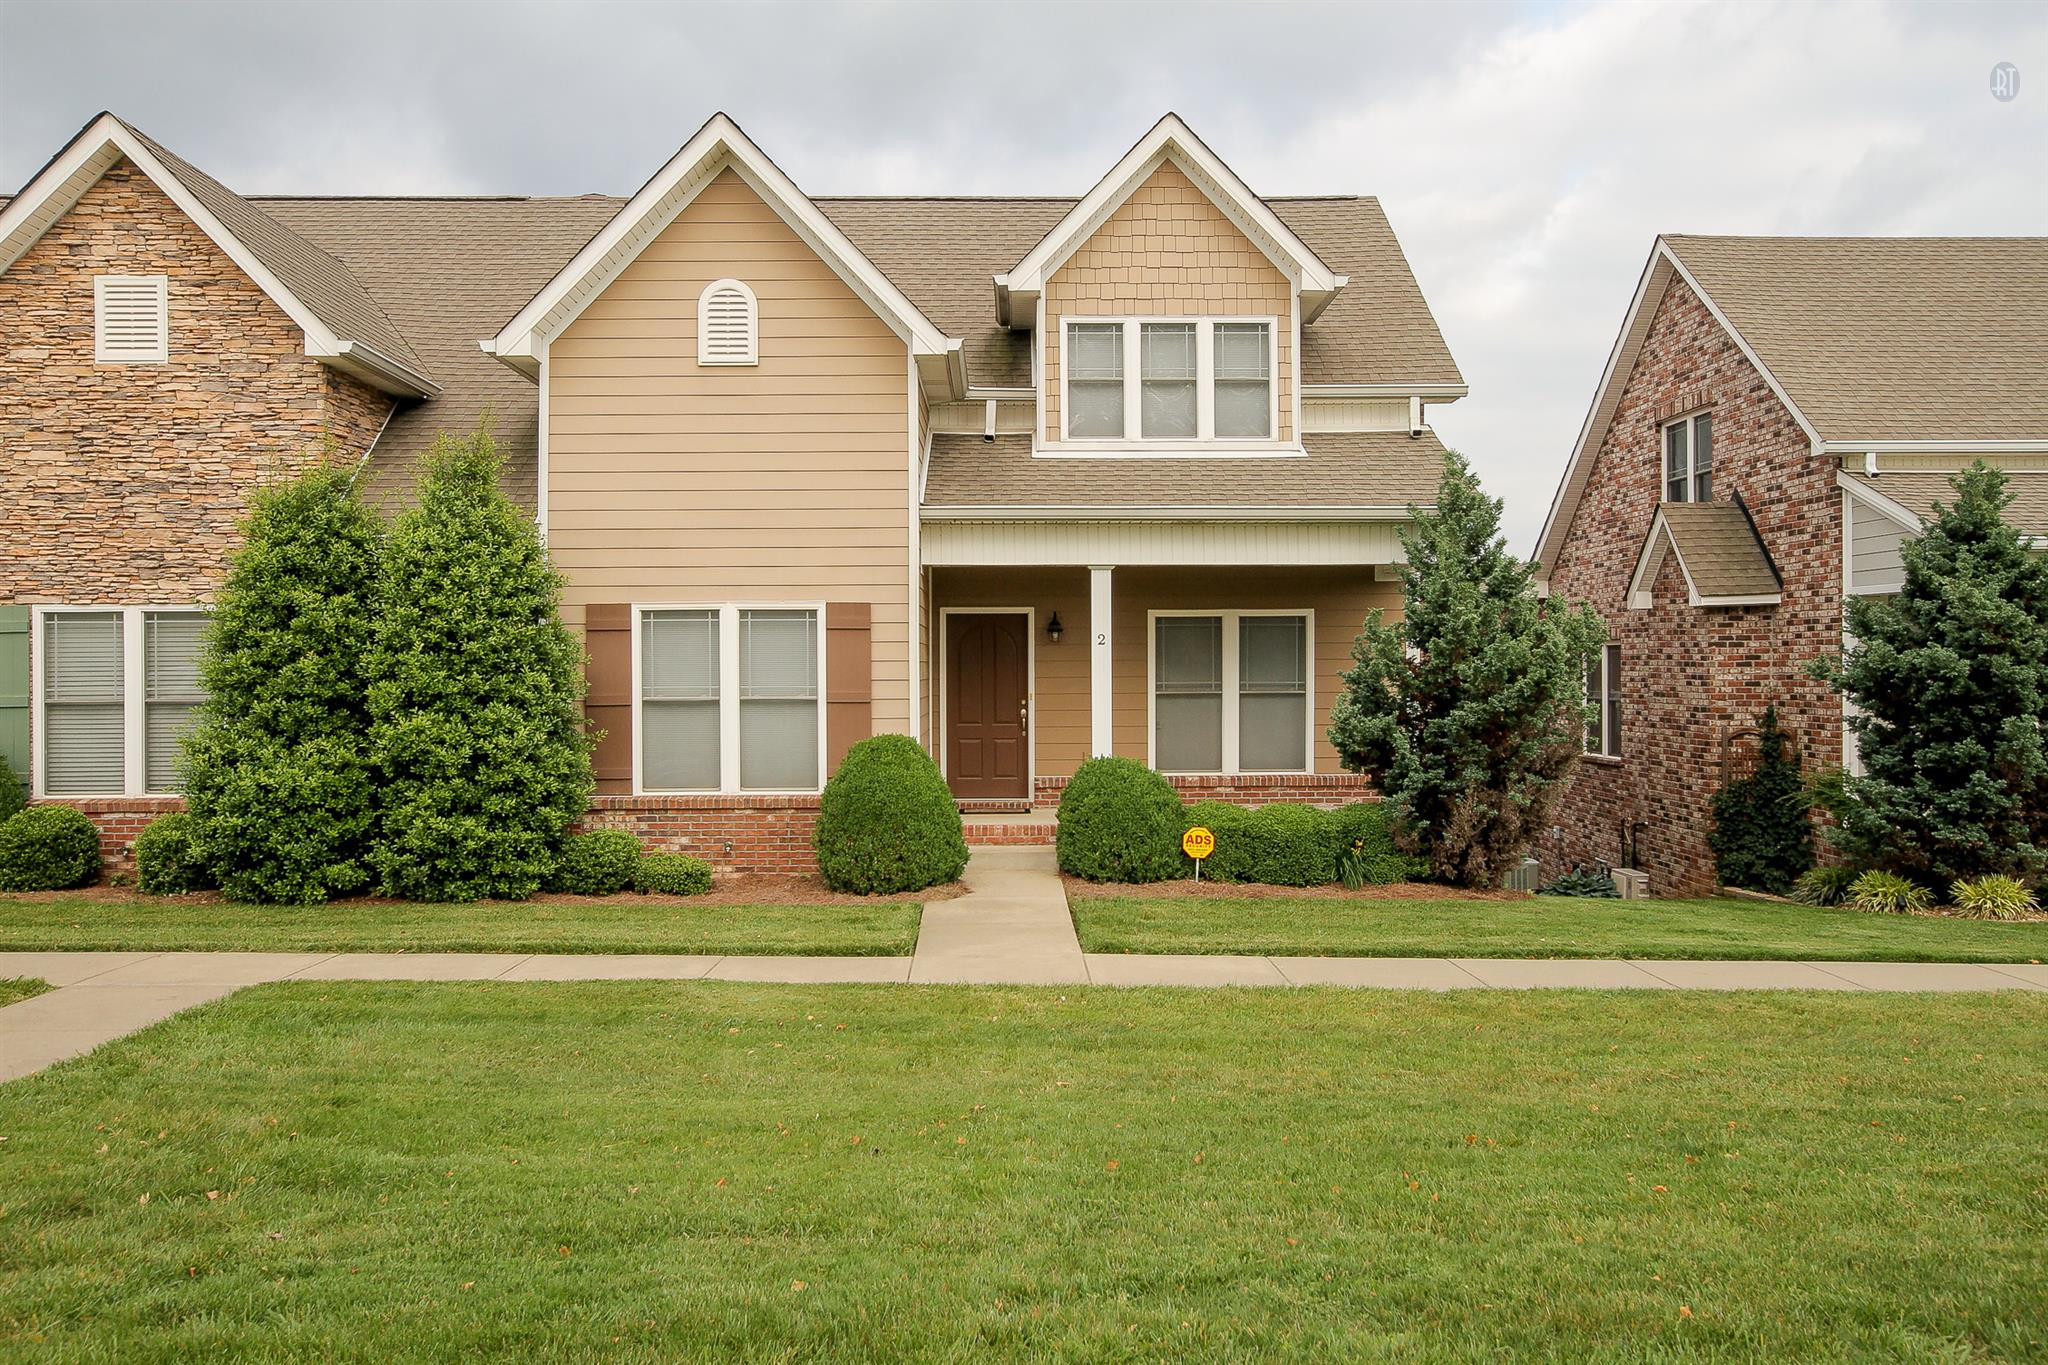 456 Pond Apple Rd # 2, Clarksville, TN 37043